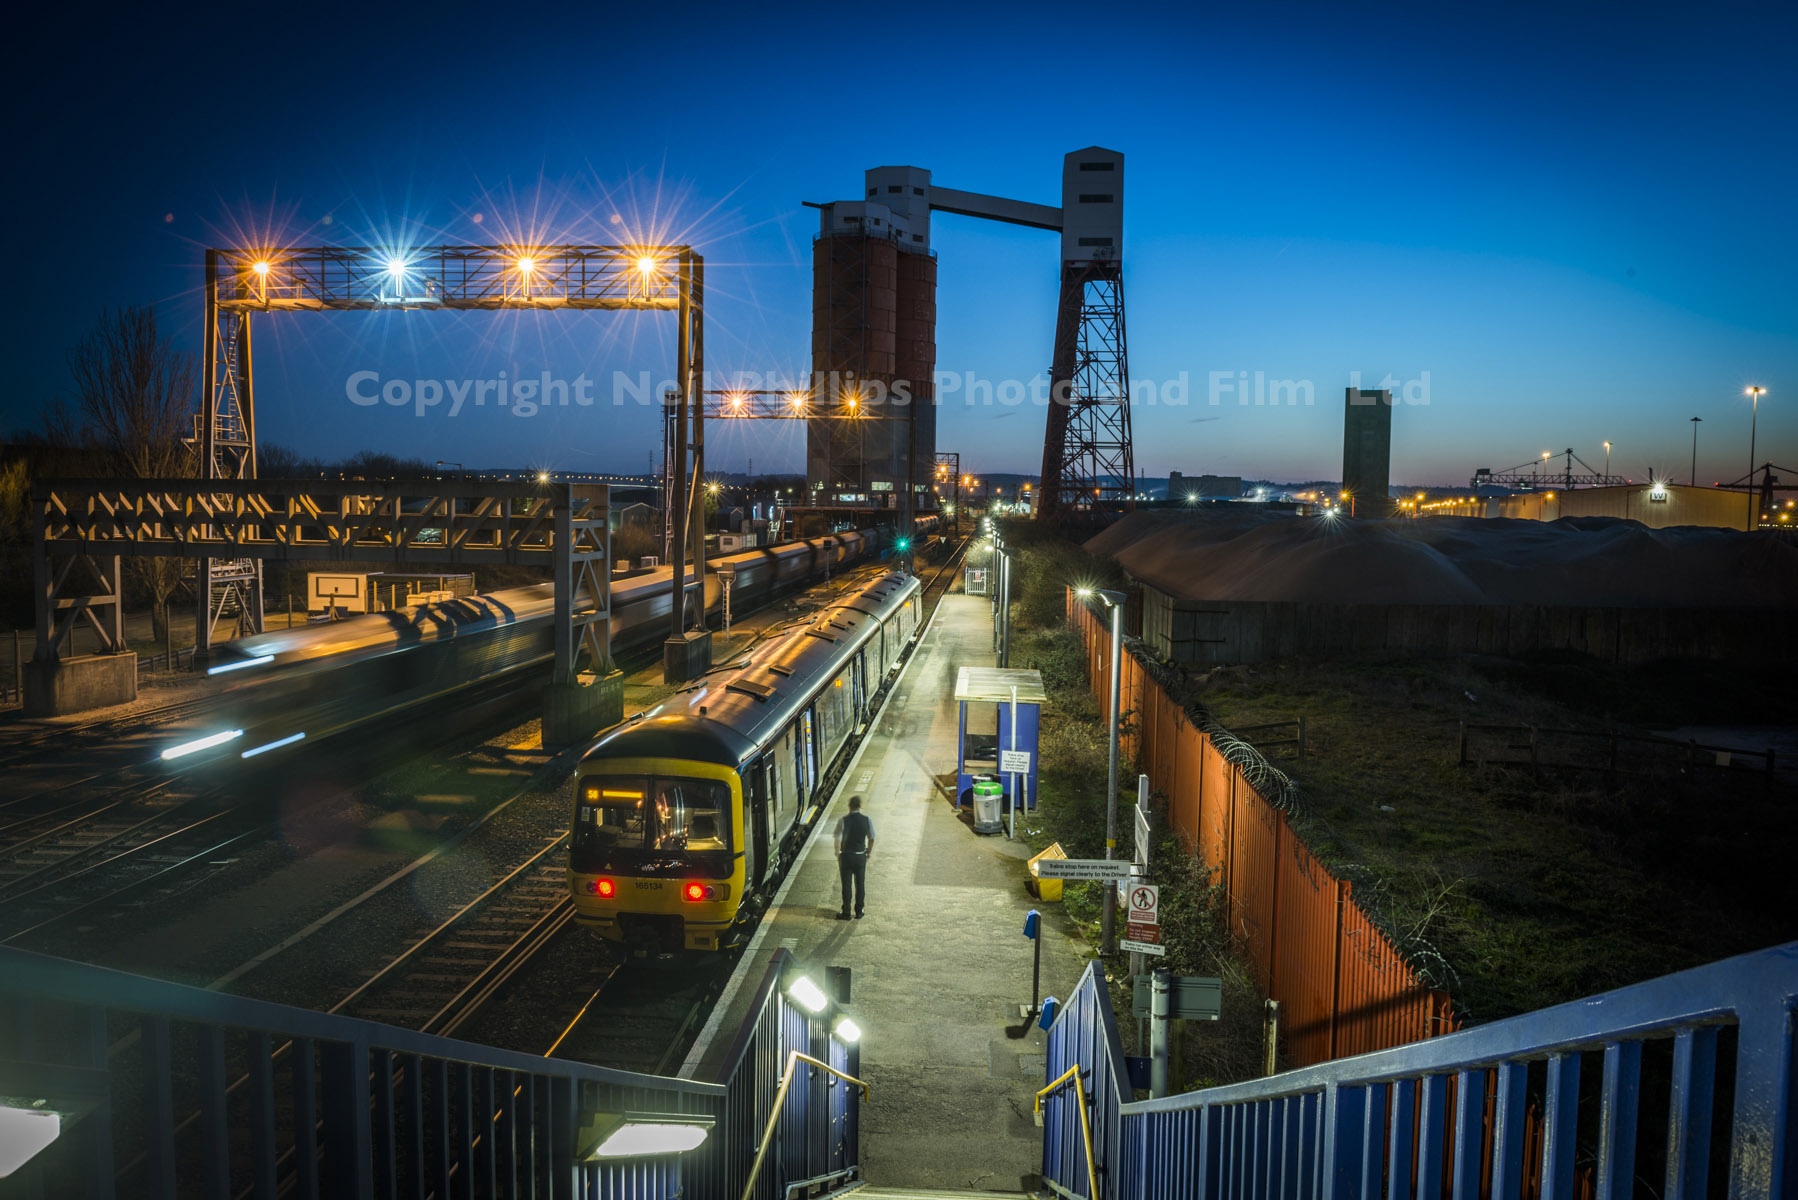 Severn Beach Line, GWR, Commercial Photographer in Bristol